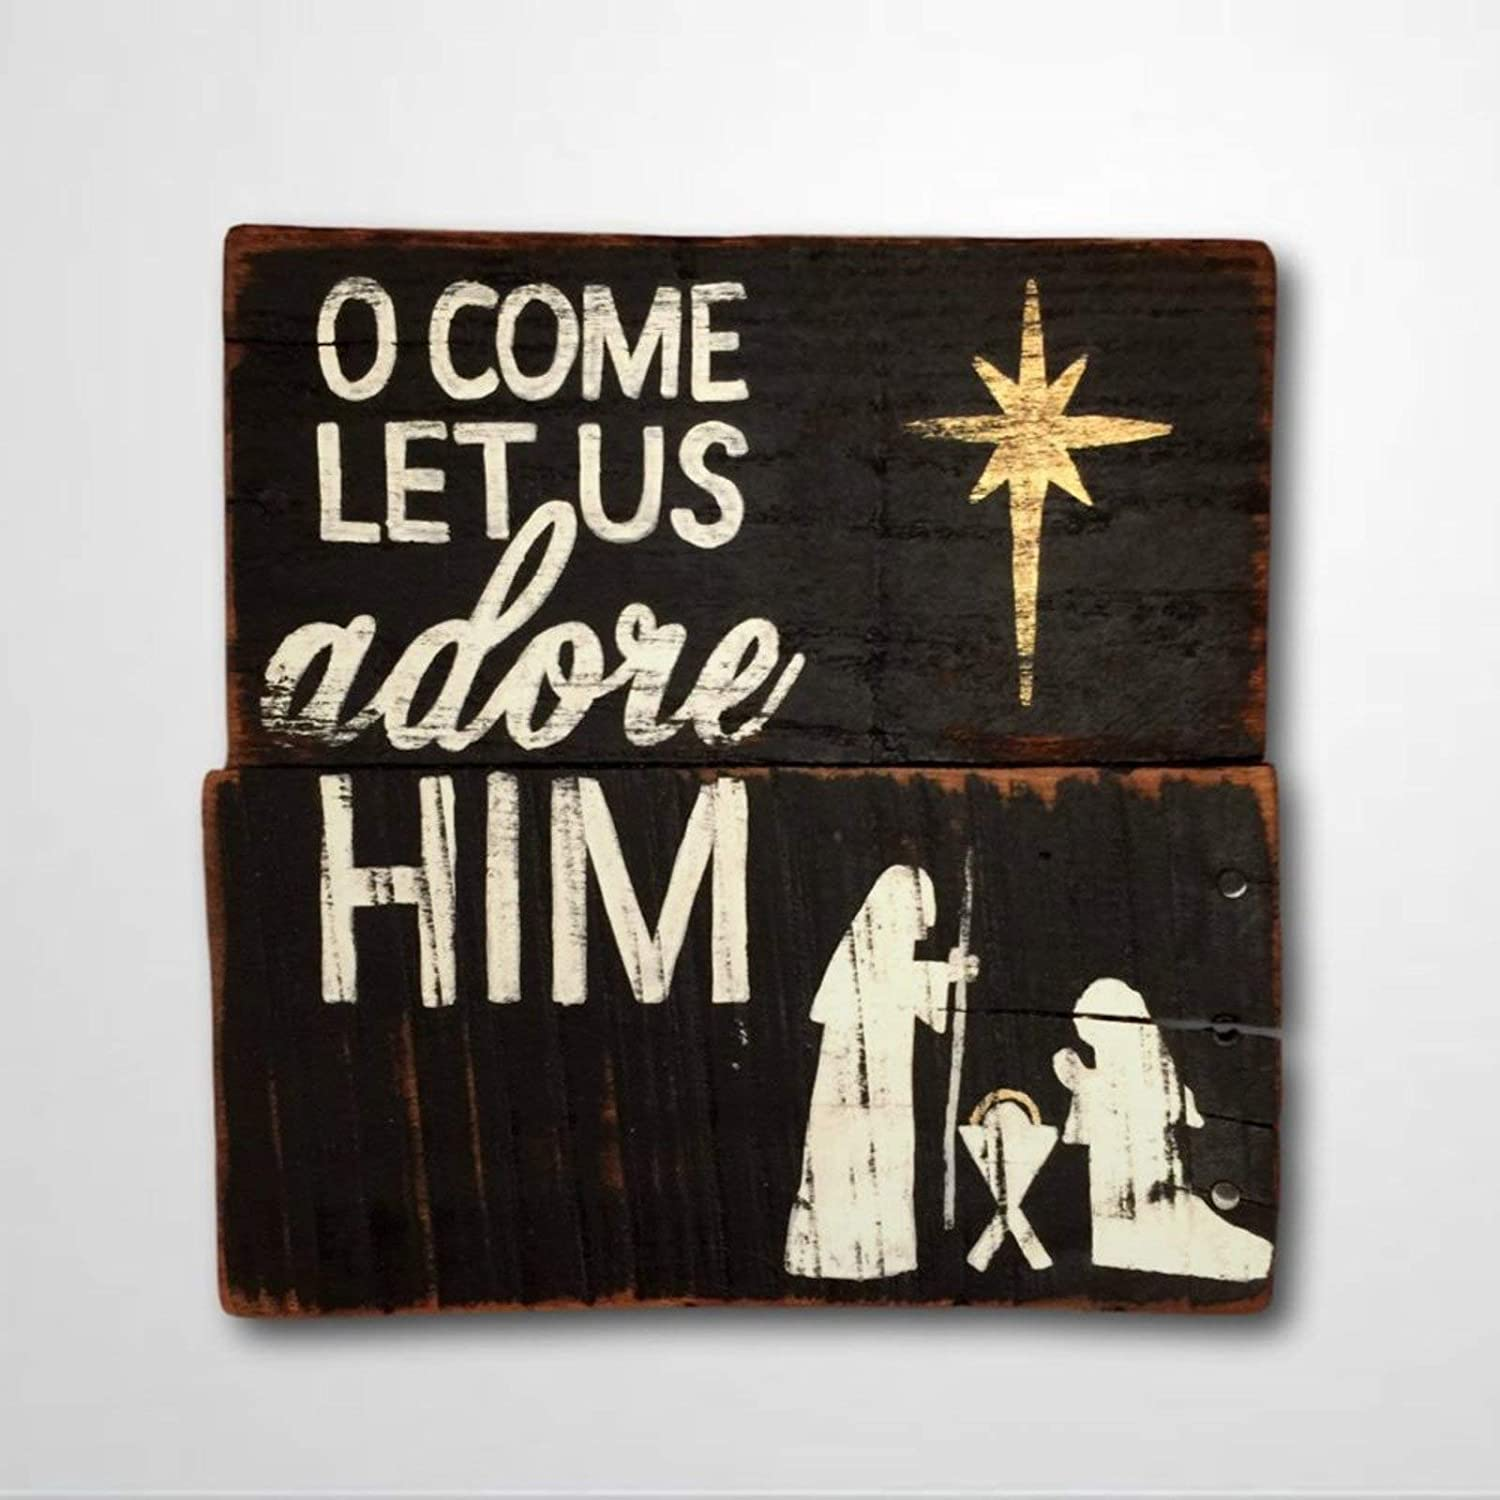 DONL9BAUER Wood Sign O Come Let Us Adore Him Christmas Wall Hanging Religious Christmas Decor Rustic Christmas Sign for Mantel Sign Home Decor Indoor Outdoor